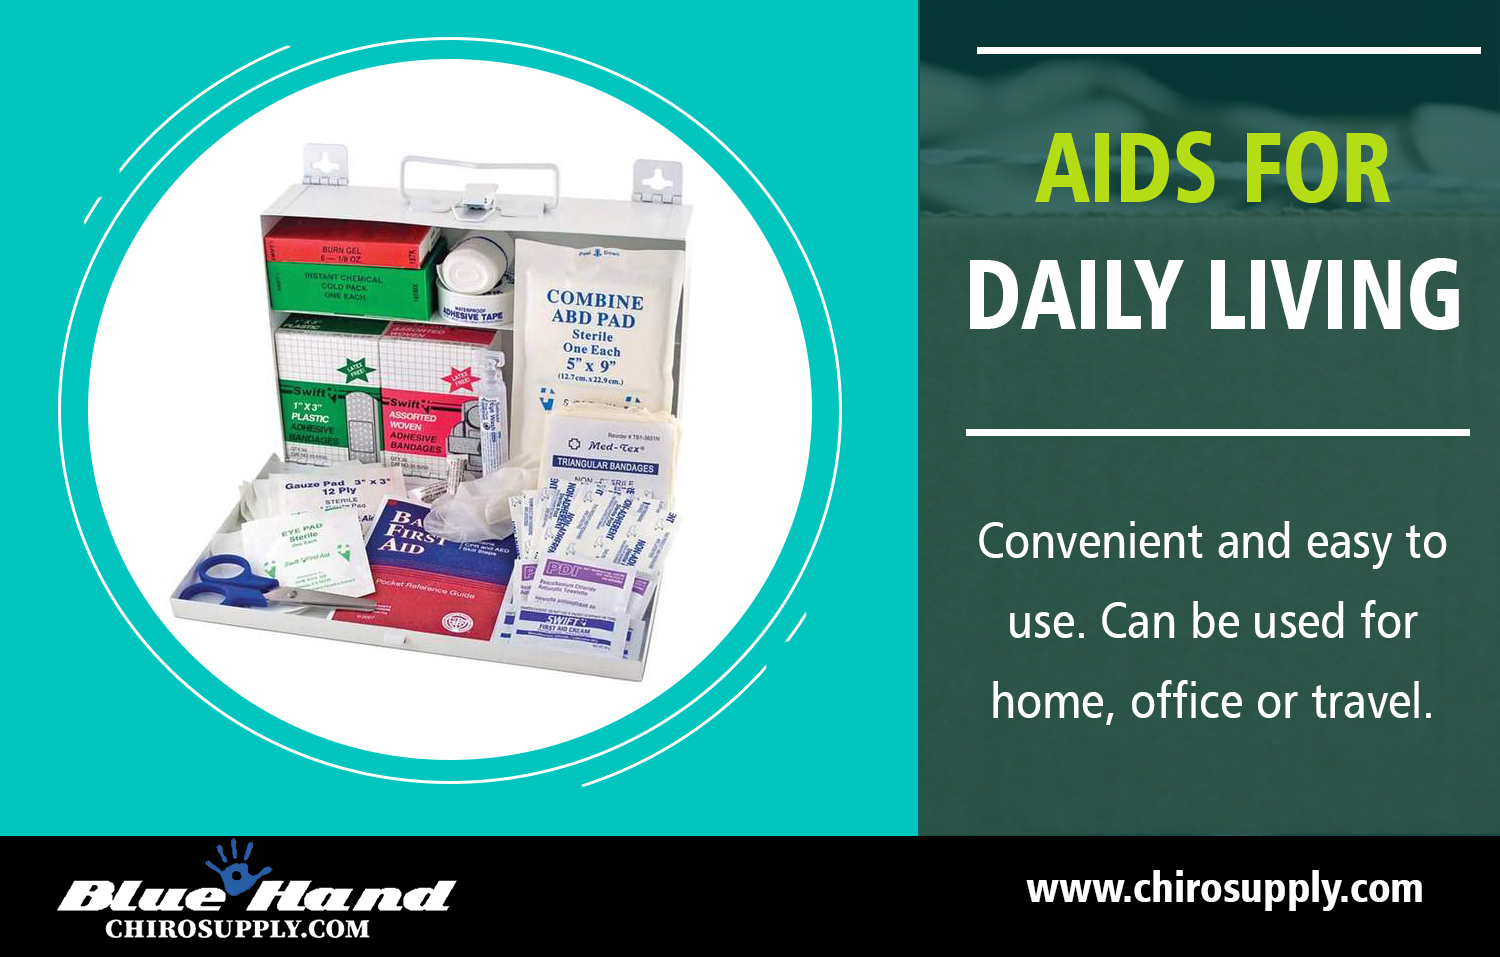 Aids for Daily Living | 8775639660 | chirosupply.com